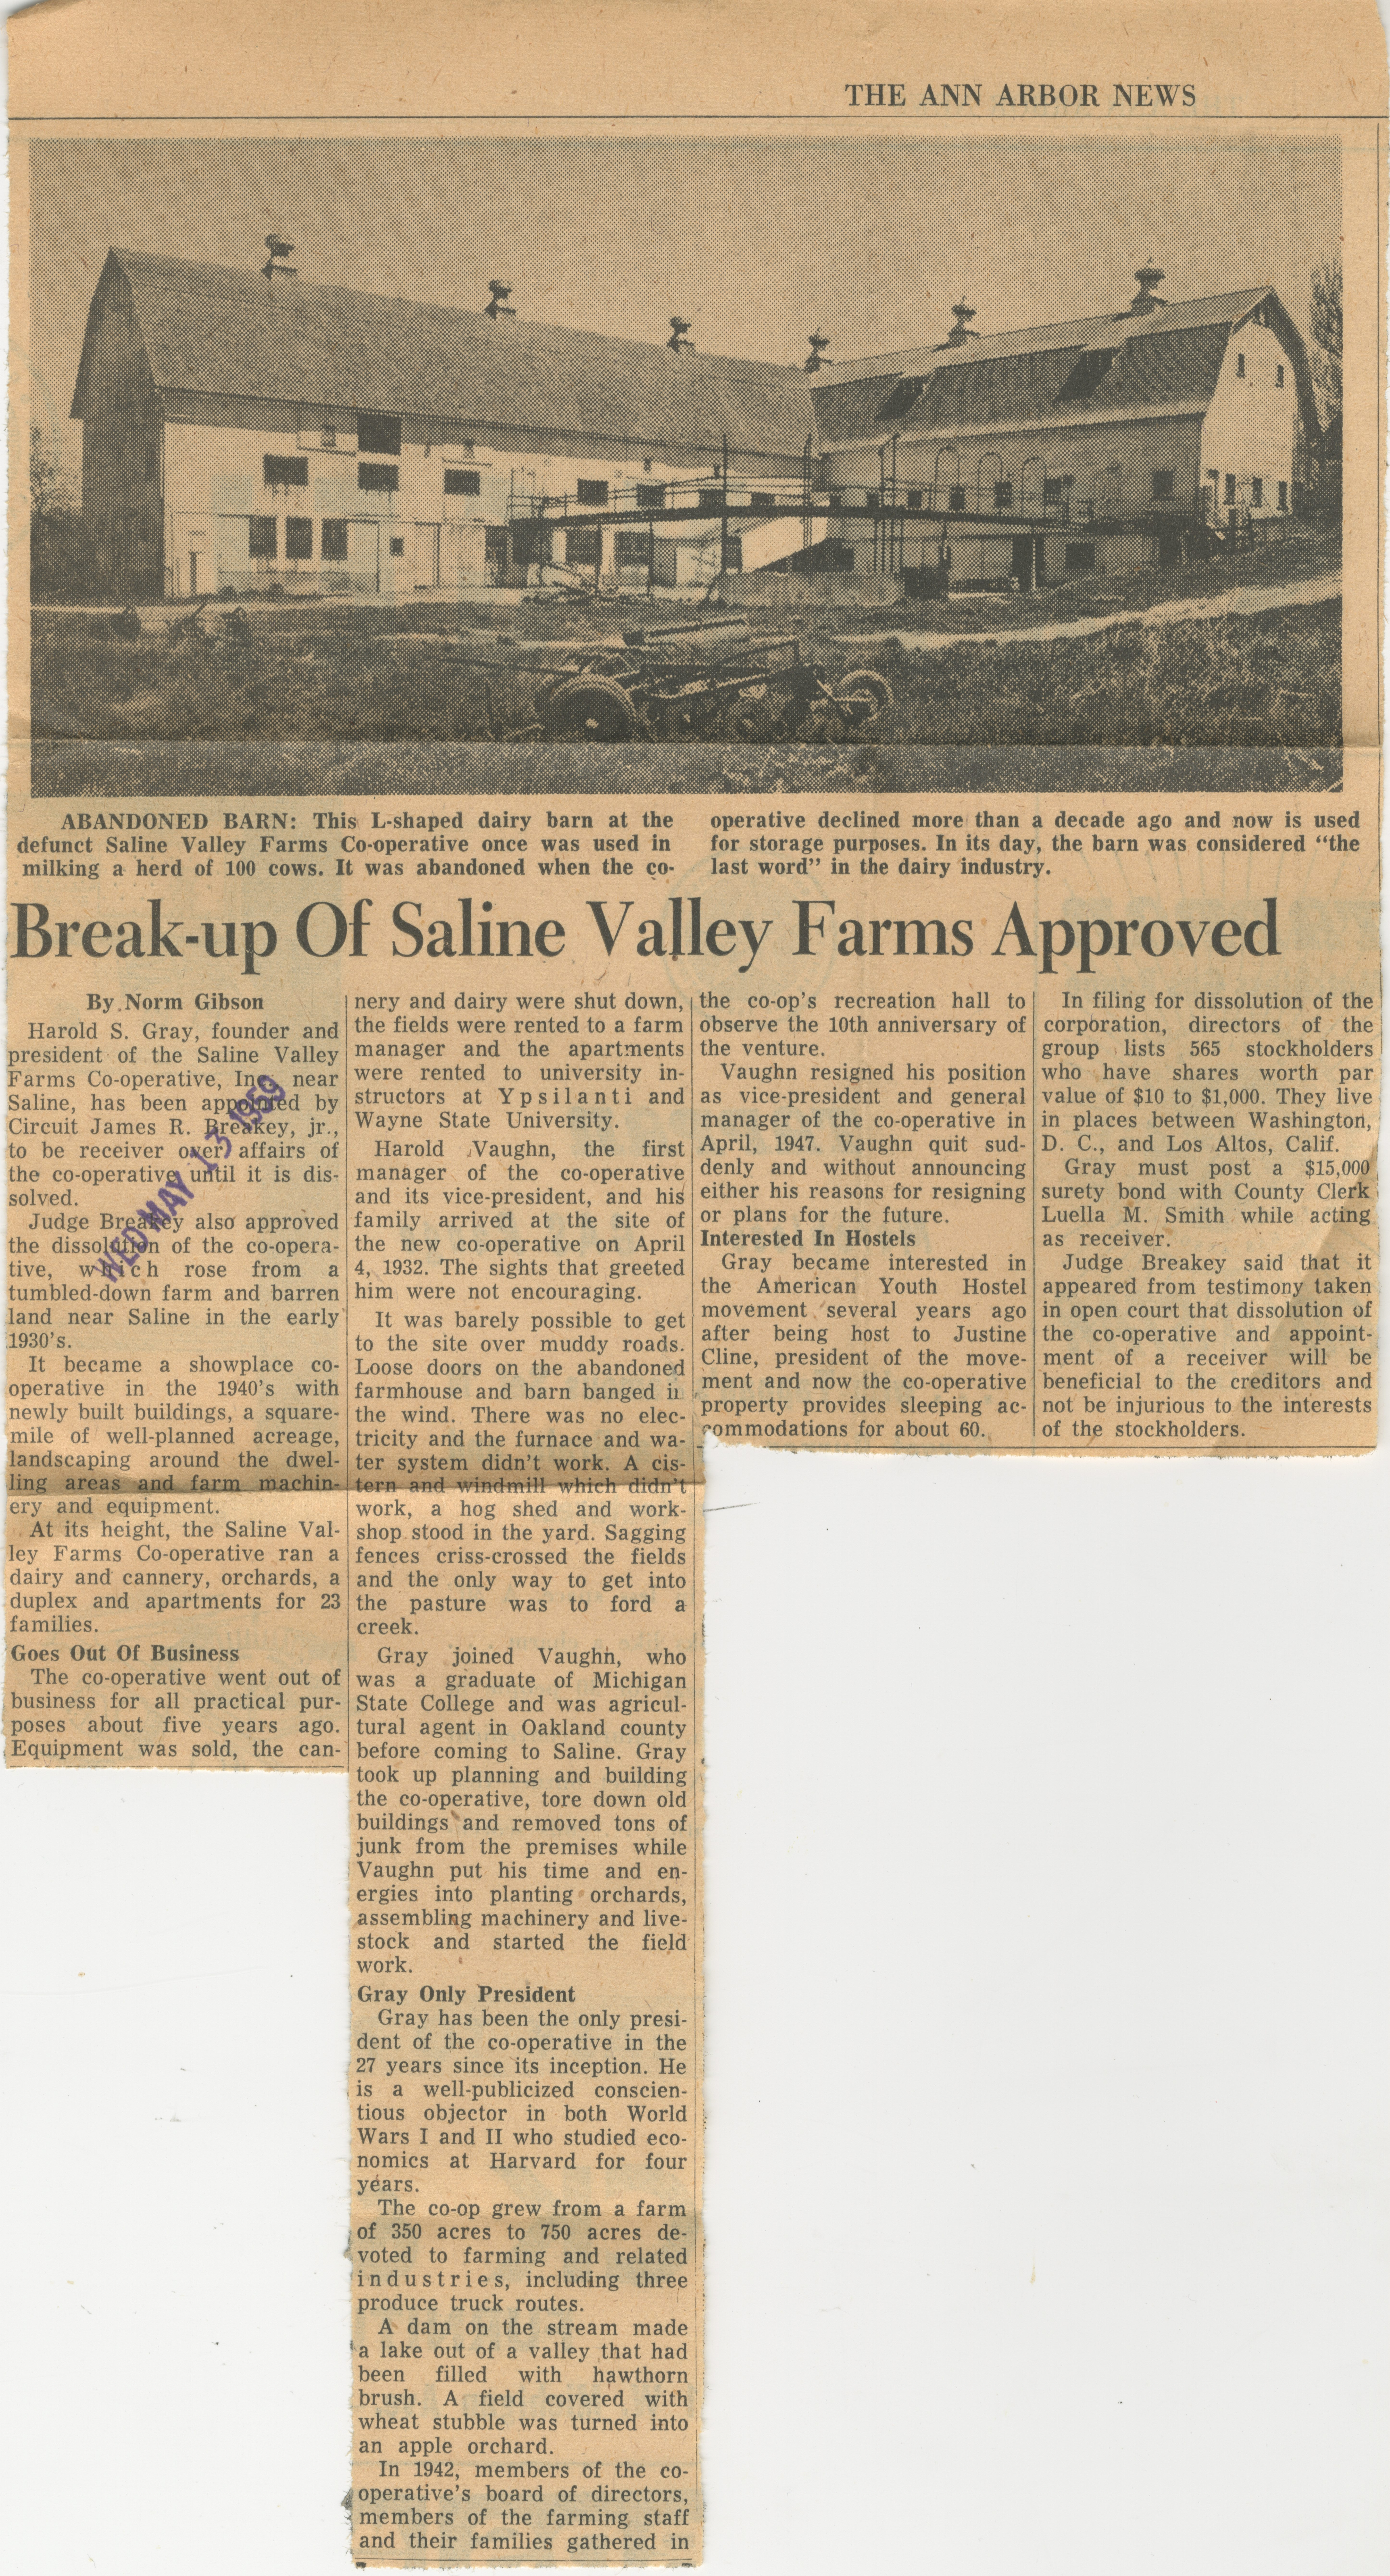 Break-Up Of Saline Valley Farms Approved image